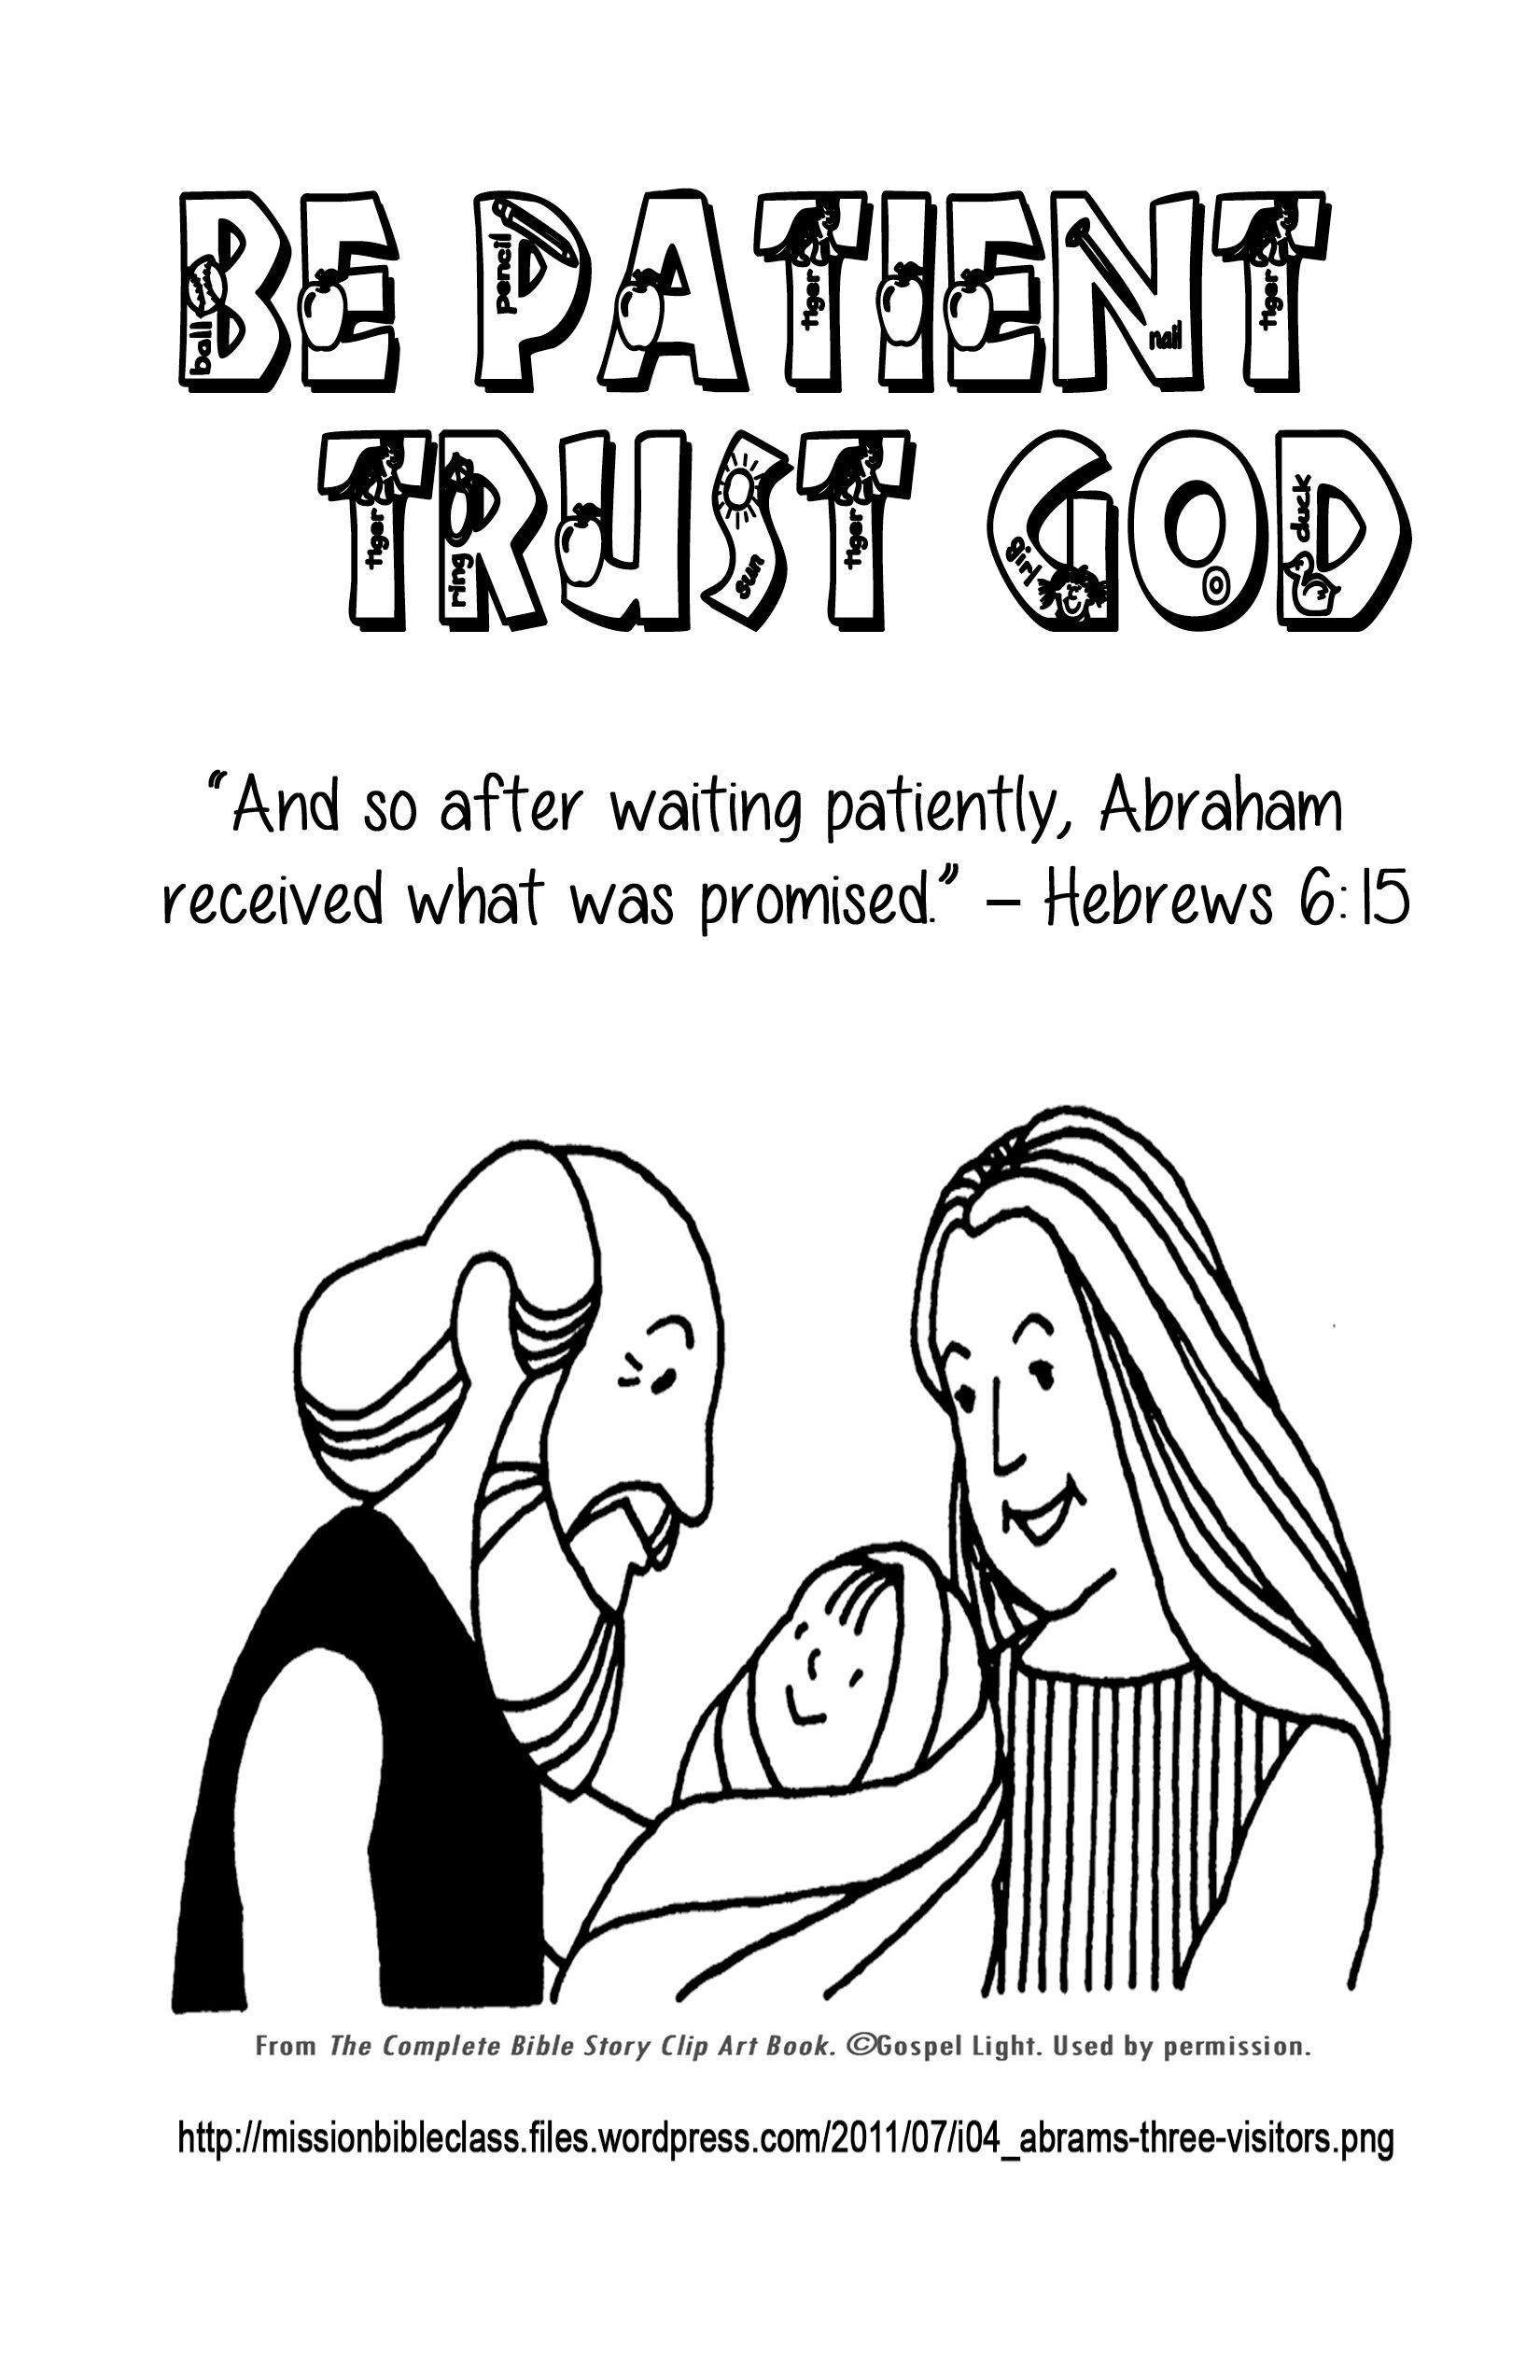 Fruits Of The Spirit Lesson 5 Part 1 Patience Hebrews 6 15 Lesson Patience Is Not Easy But Memory Verses For Kids Bible For Kids Bible Lessons For Kids [ 2550 x 1650 Pixel ]